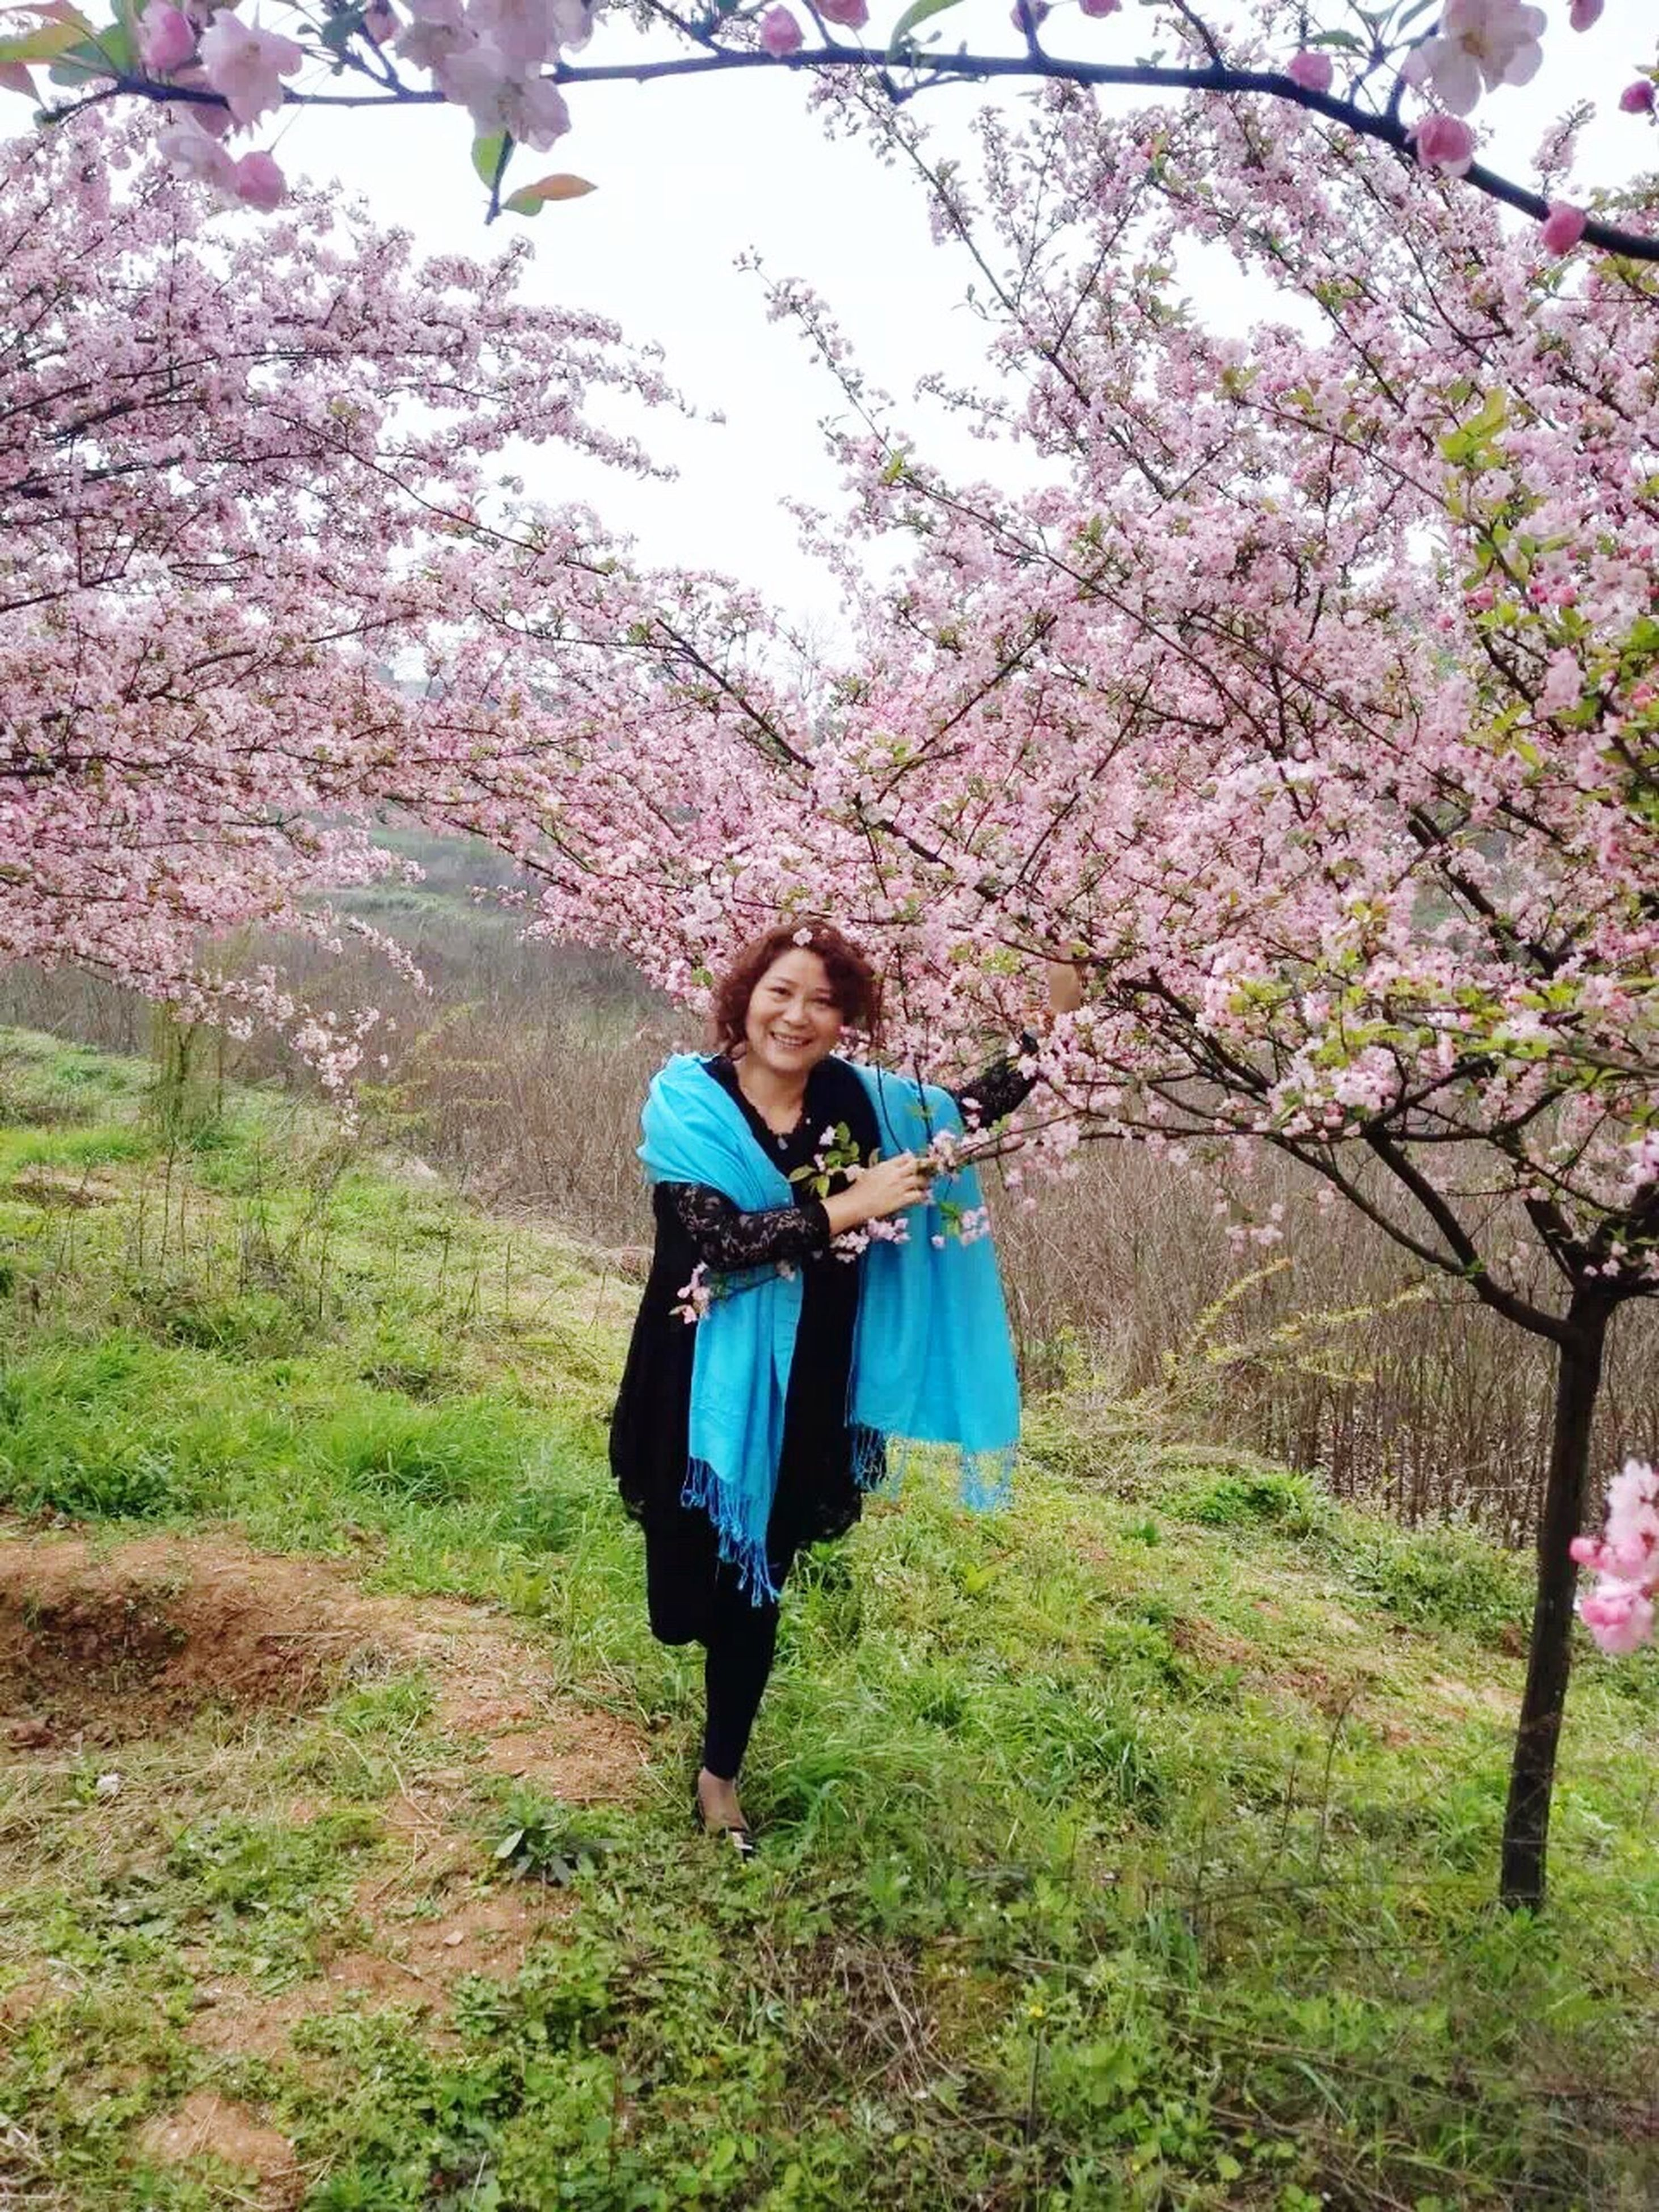 lifestyles, casual clothing, leisure activity, person, full length, tree, flower, young adult, looking at camera, standing, nature, young women, smiling, growth, front view, portrait, beauty in nature, childhood